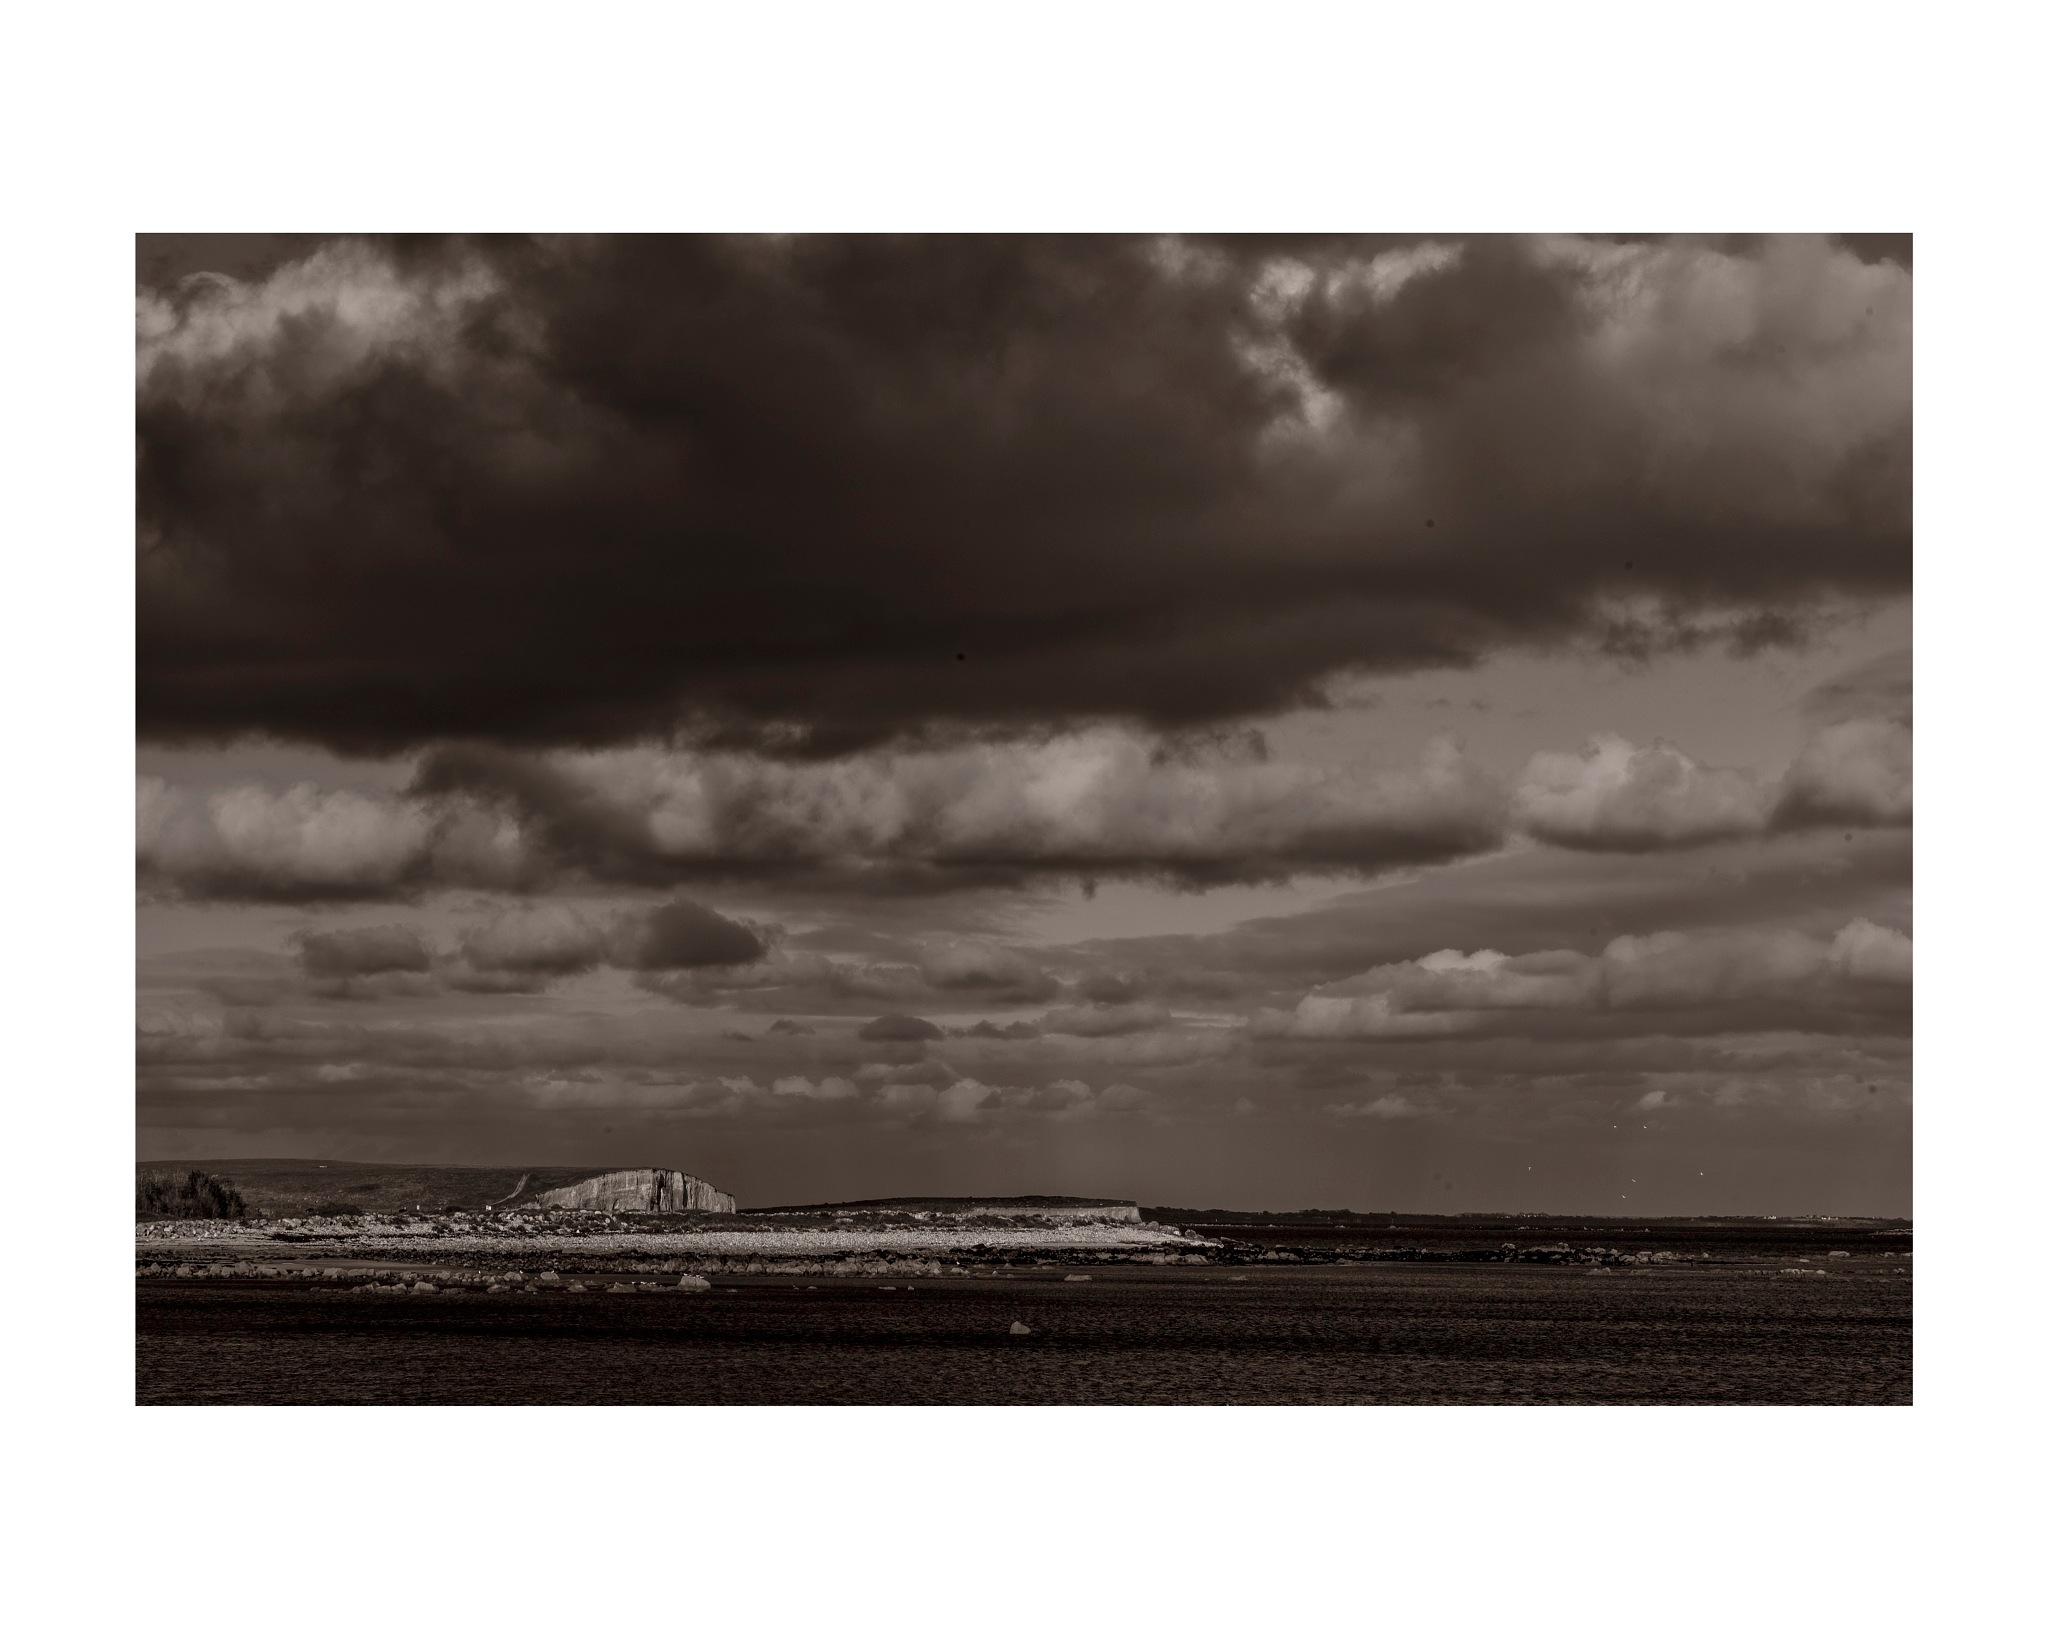 Barna on Galway Bay by jhulton